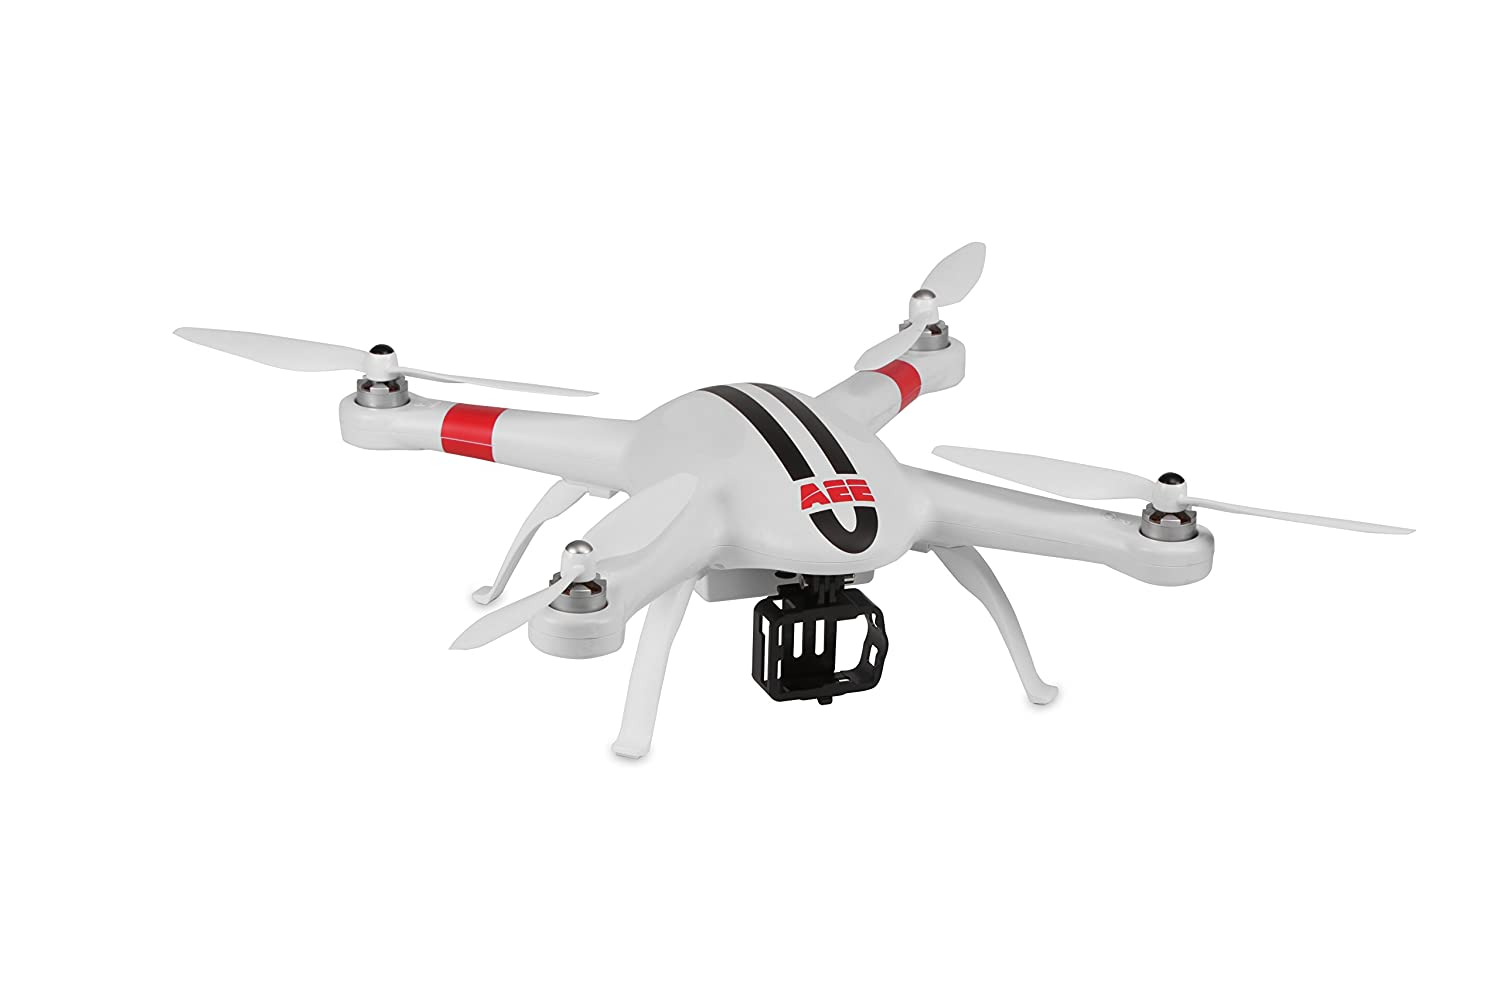 AEE Technology APCAM GPS Drone Quadcopter Aircraft System with Full HD 1080P 16MP S40 Action Camera (White) [並行輸入品]   B01789N29Q